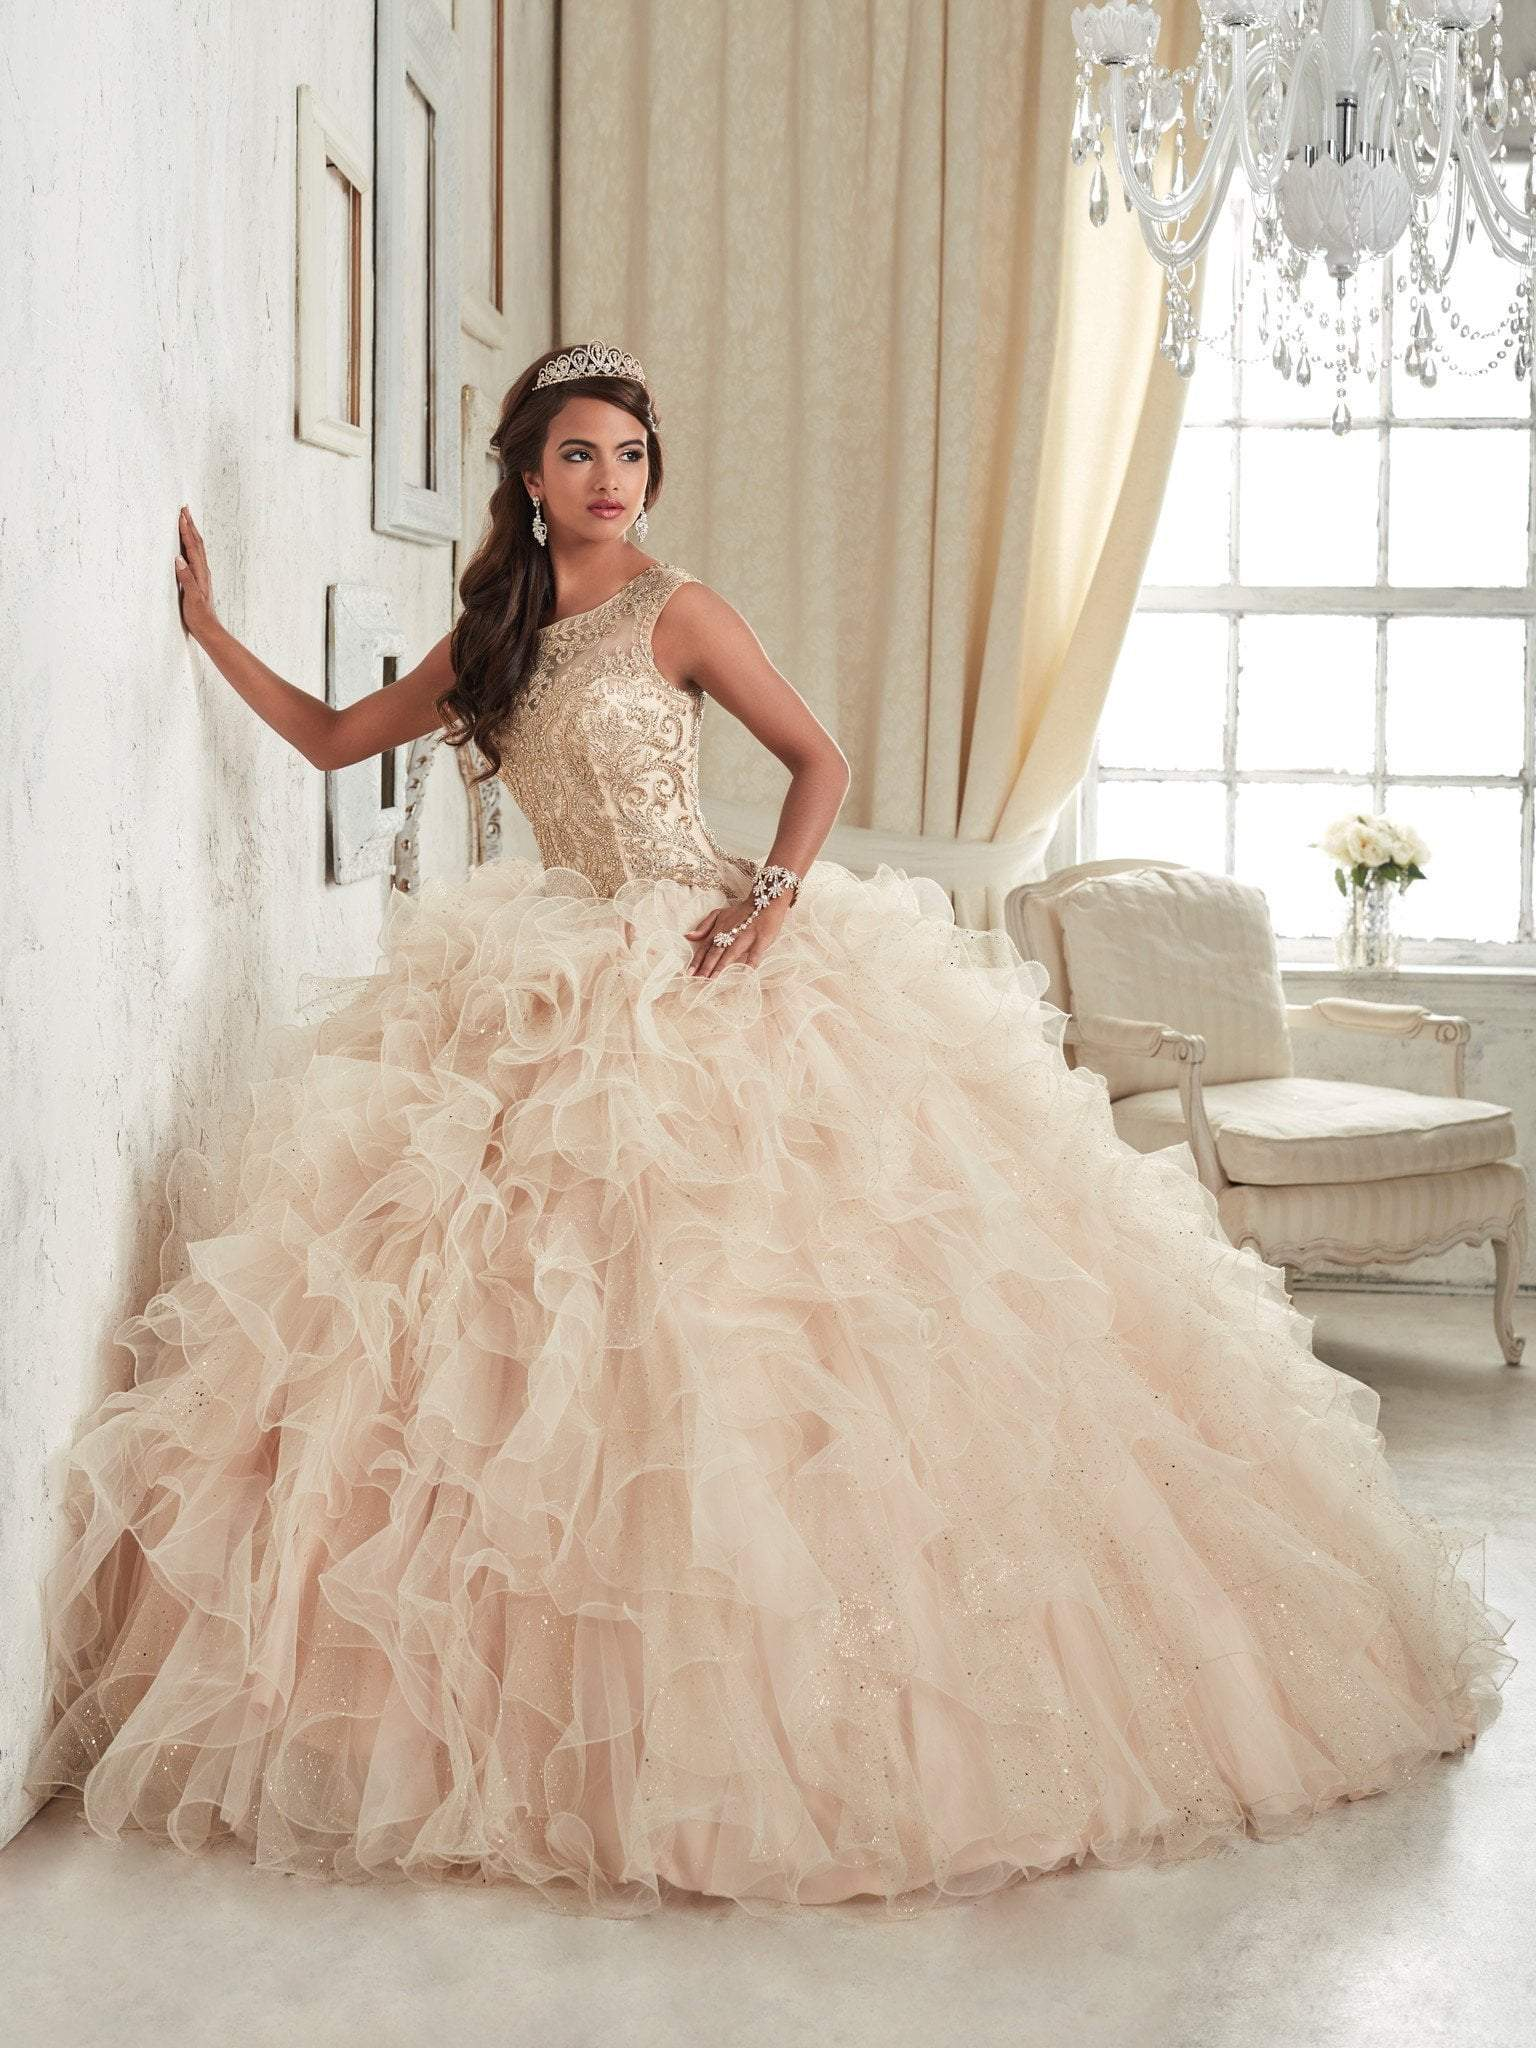 Quinceanera Collection - 26835 Beaded Illusion Bateau Ruffle Ballgown from Quinceanera Collection